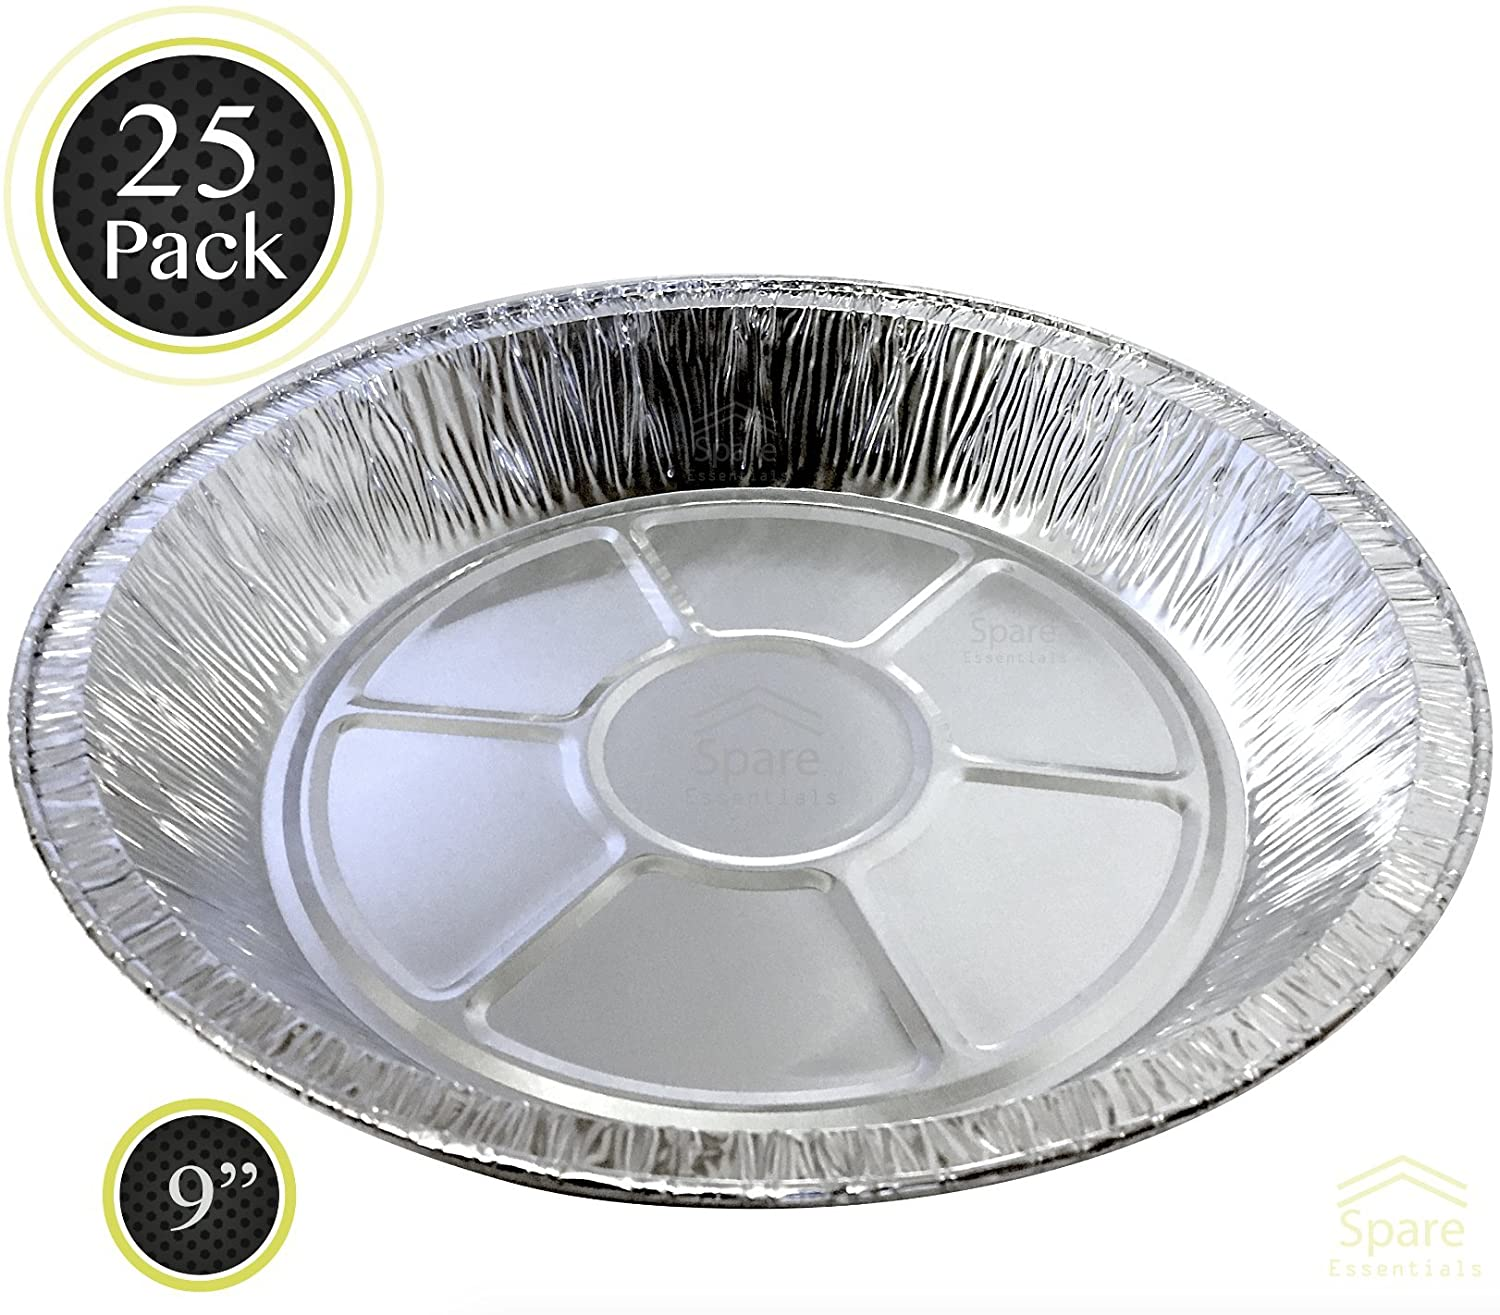 25 PACK - Prime Pie Pans. Ideal for Tasteful Cakes and Pies. Sturdy Aluminum Foil Pans. Disposable Tin Plates for Tart/Pie – SIZE 9'' Spare